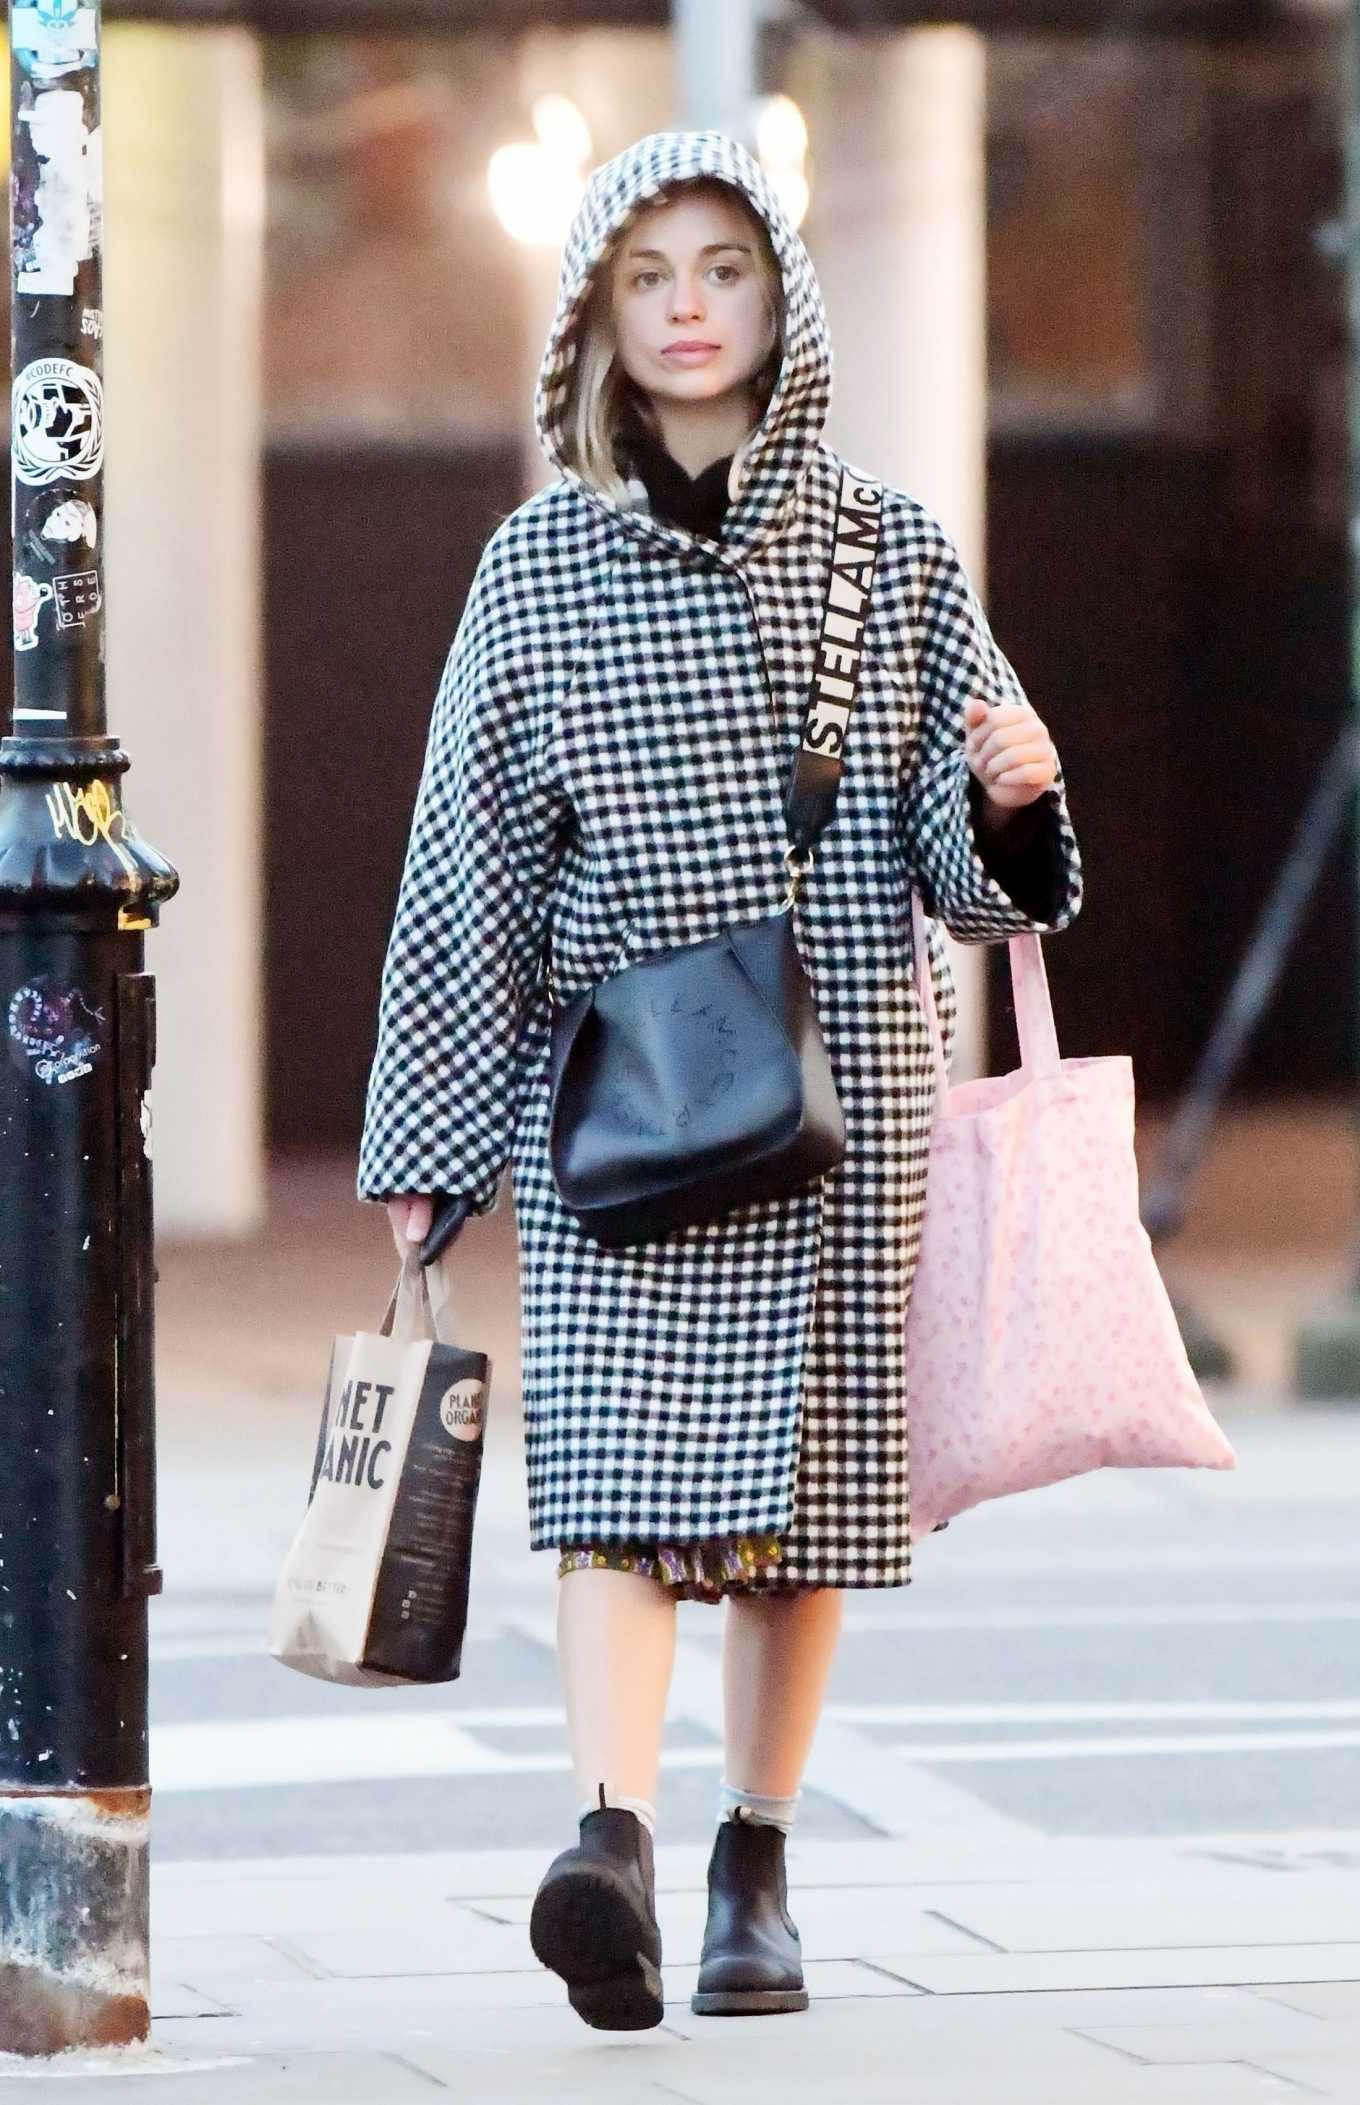 Amelia Windsor 2020 : Amelia Windsor – Looks stylis while out in the trendy area of Notting Hill-34